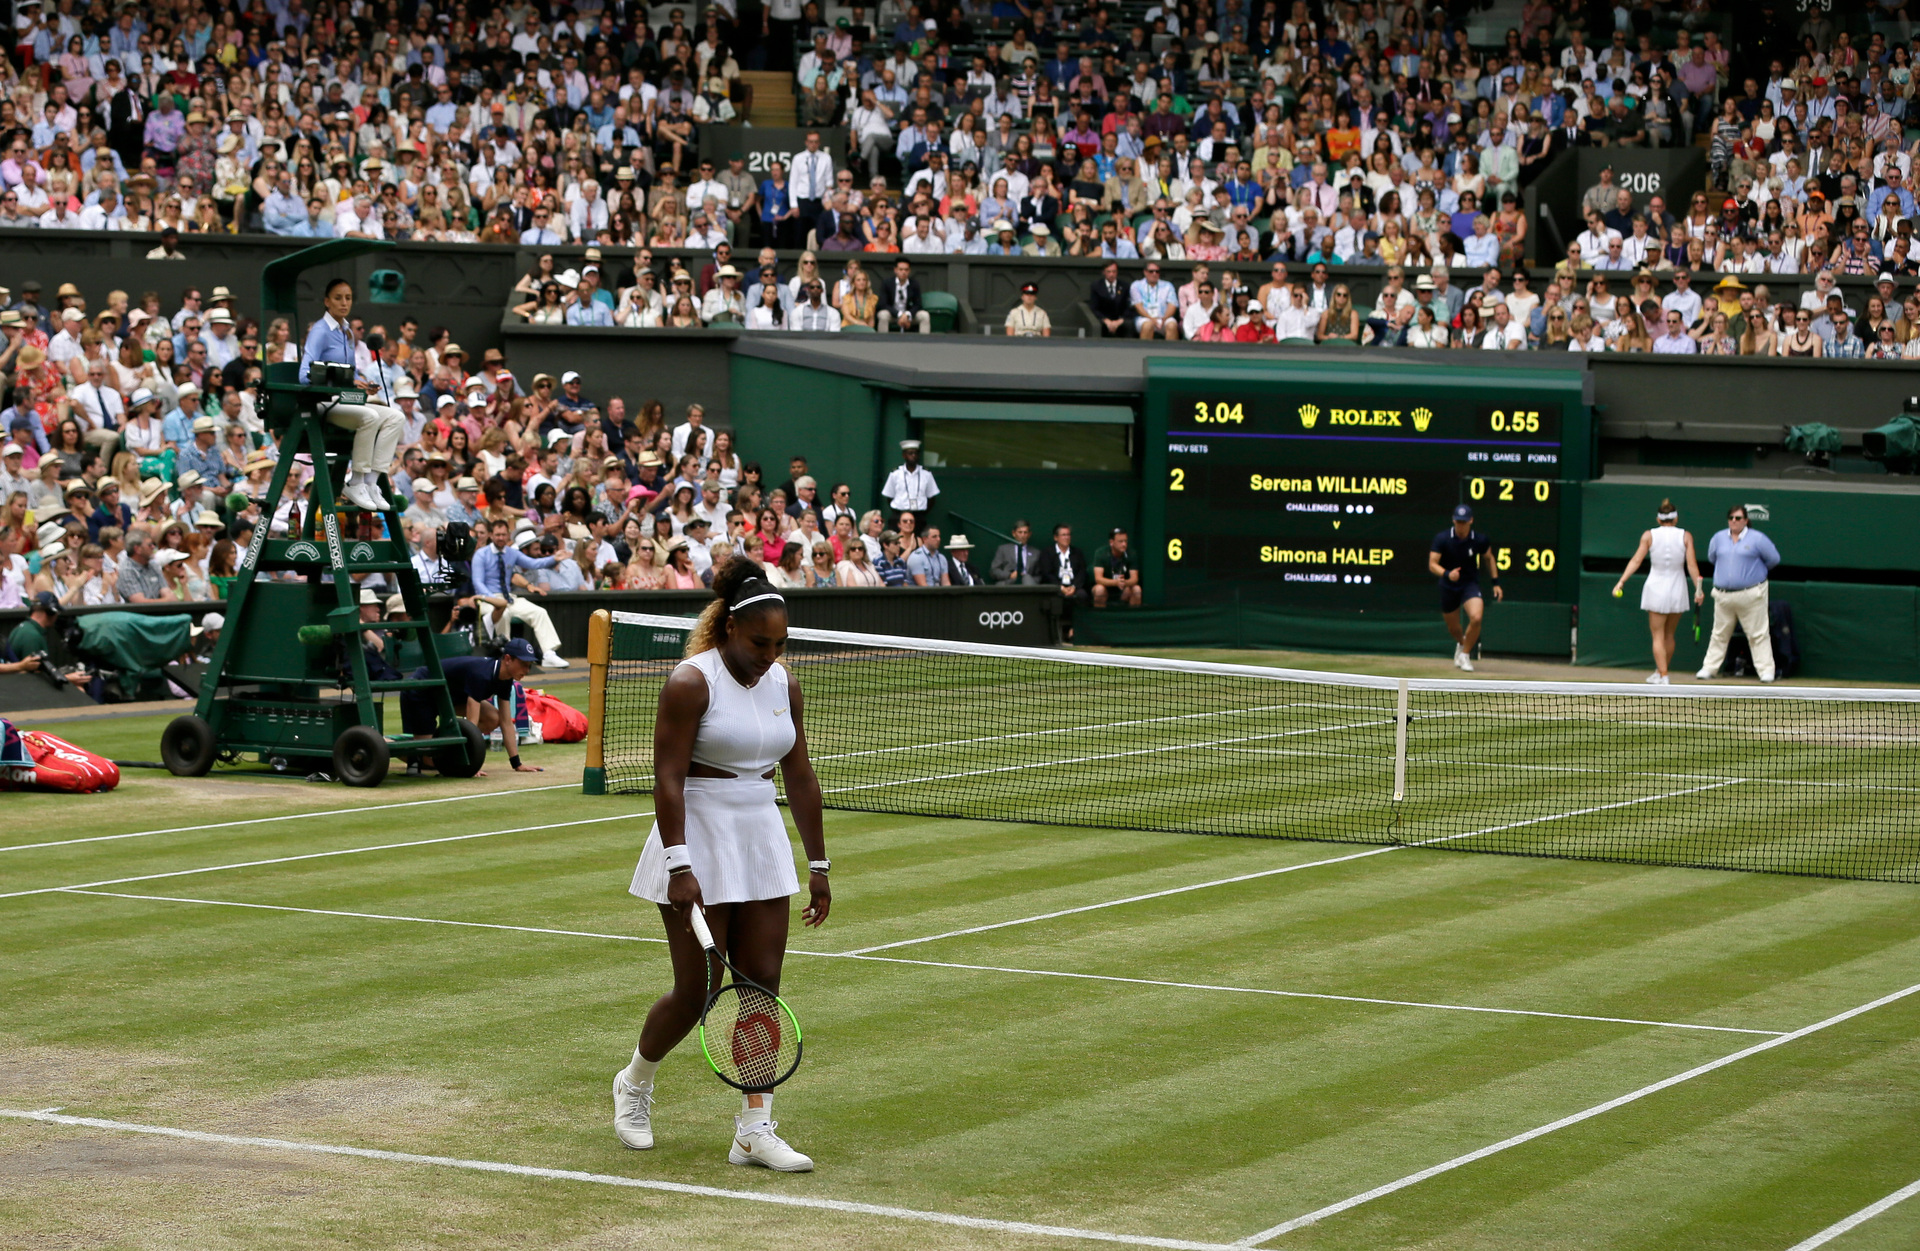 Serena Williams leaves Wimbledon with defiant final statement